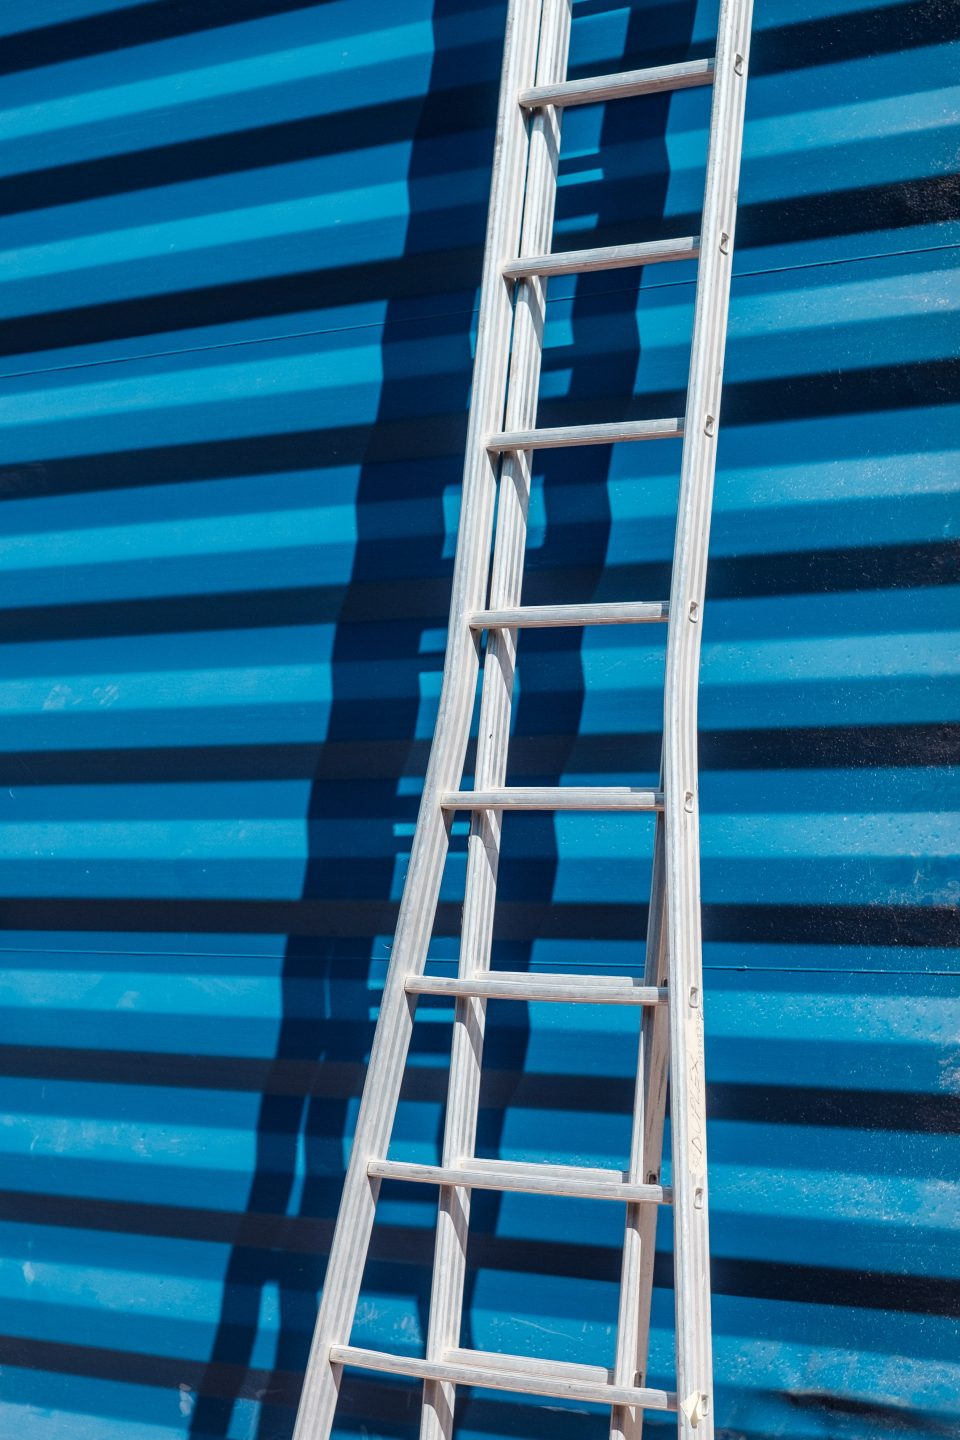 One of the storage container pods, blue with ladder